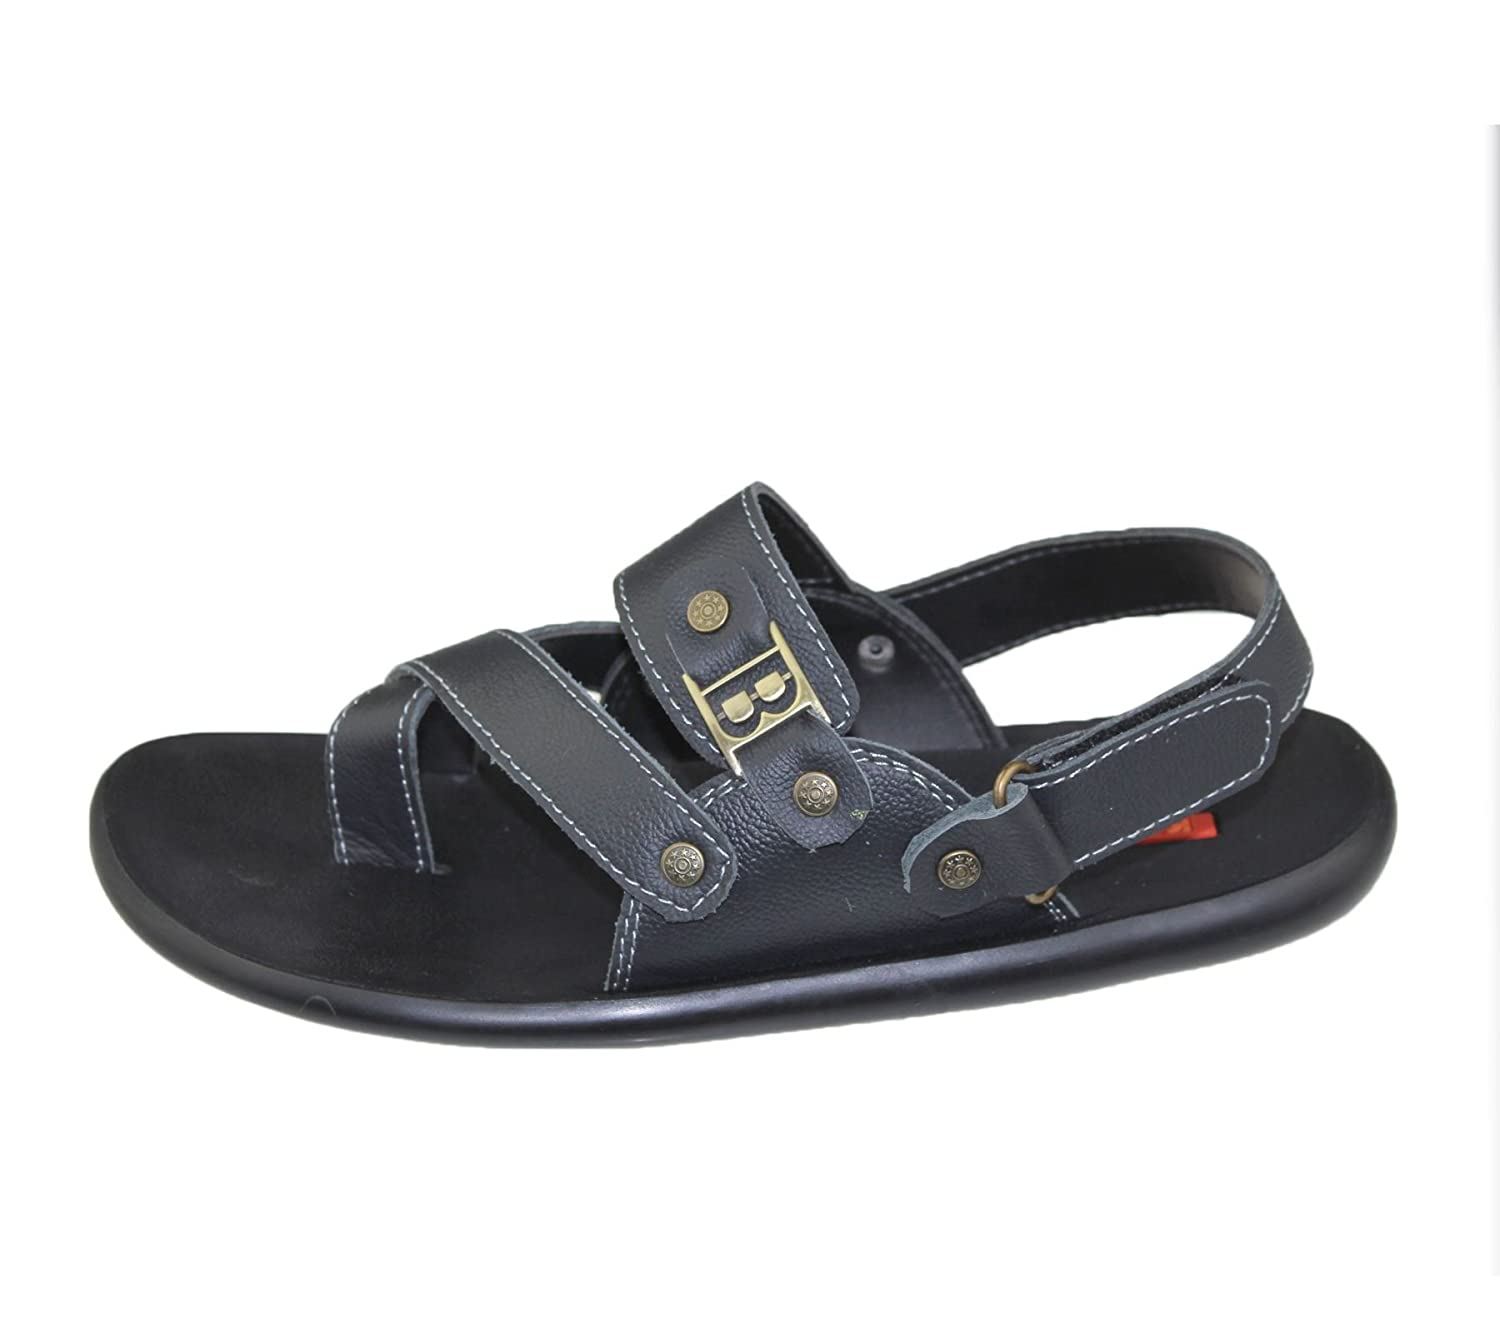 Mens Sandals Casual Beach Fashion Walking Velcro Flat Comfort Shoes Slipper  Size: Amazon.co.uk: Shoes & Bags